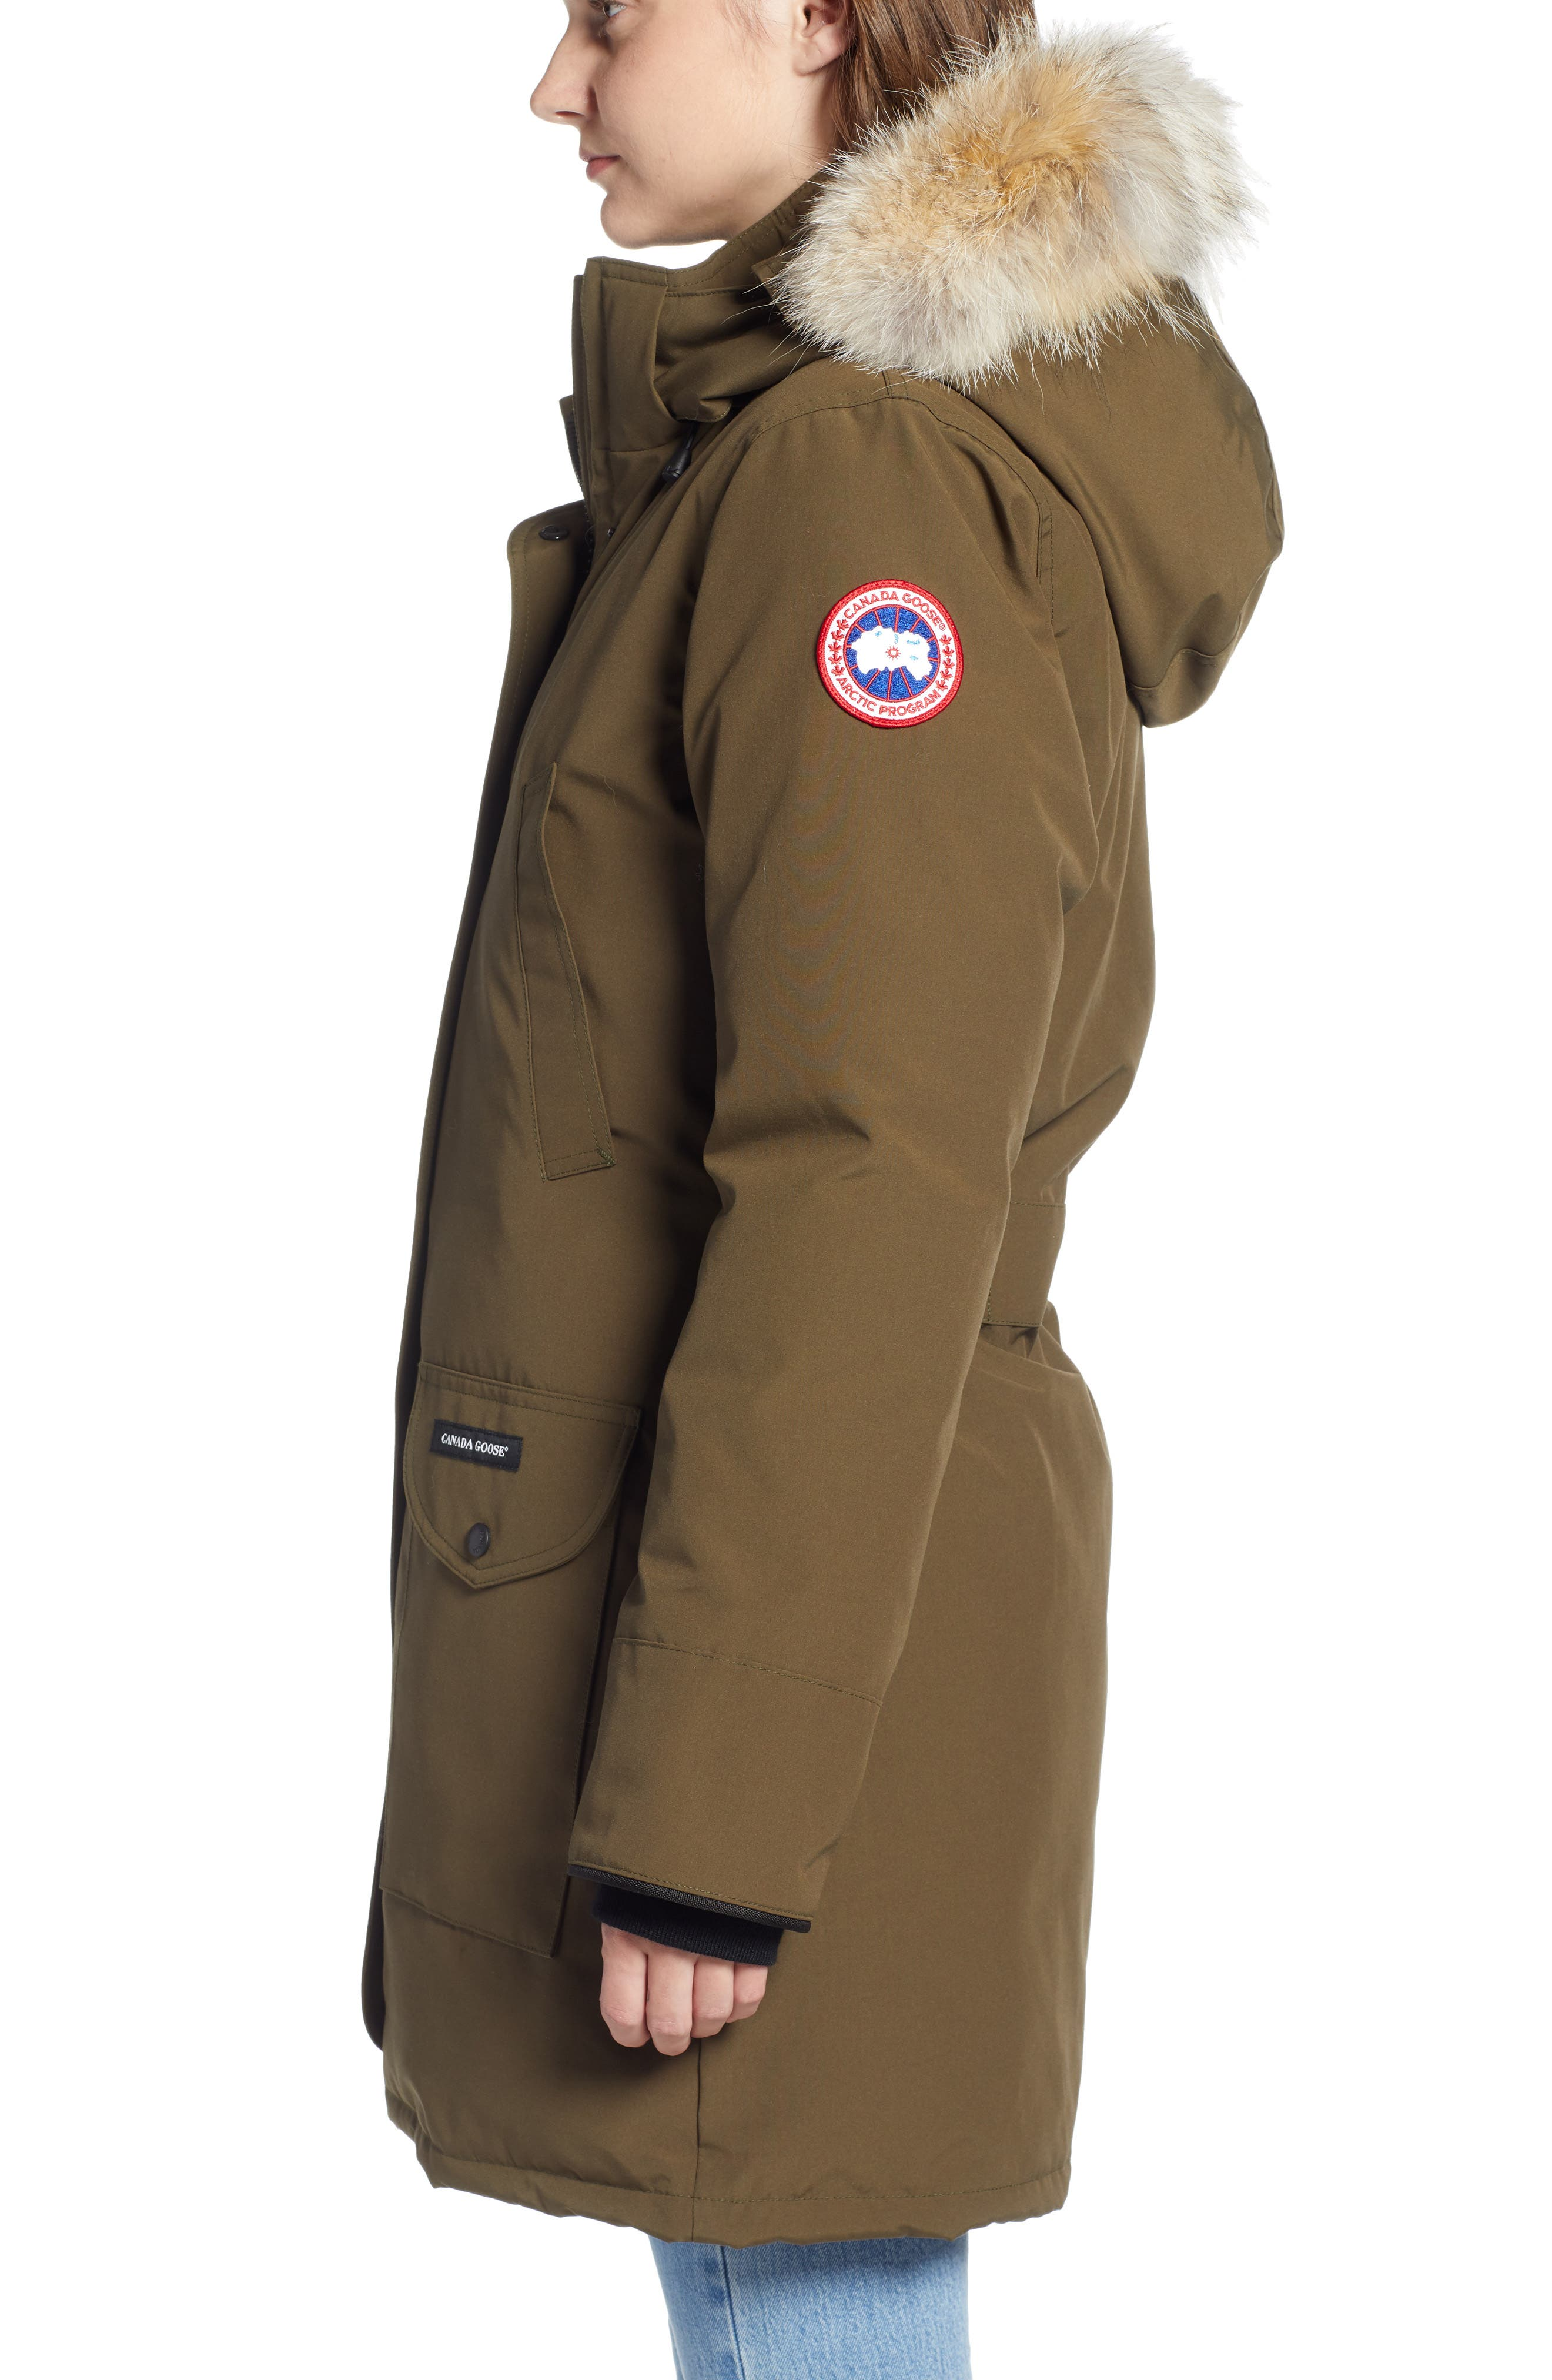 CANADA GOOSE,                             'Trillium' Regular Fit Down Parka with Genuine Coyote Fur Trim,                             Alternate thumbnail 3, color,                             MILITARY GREEN